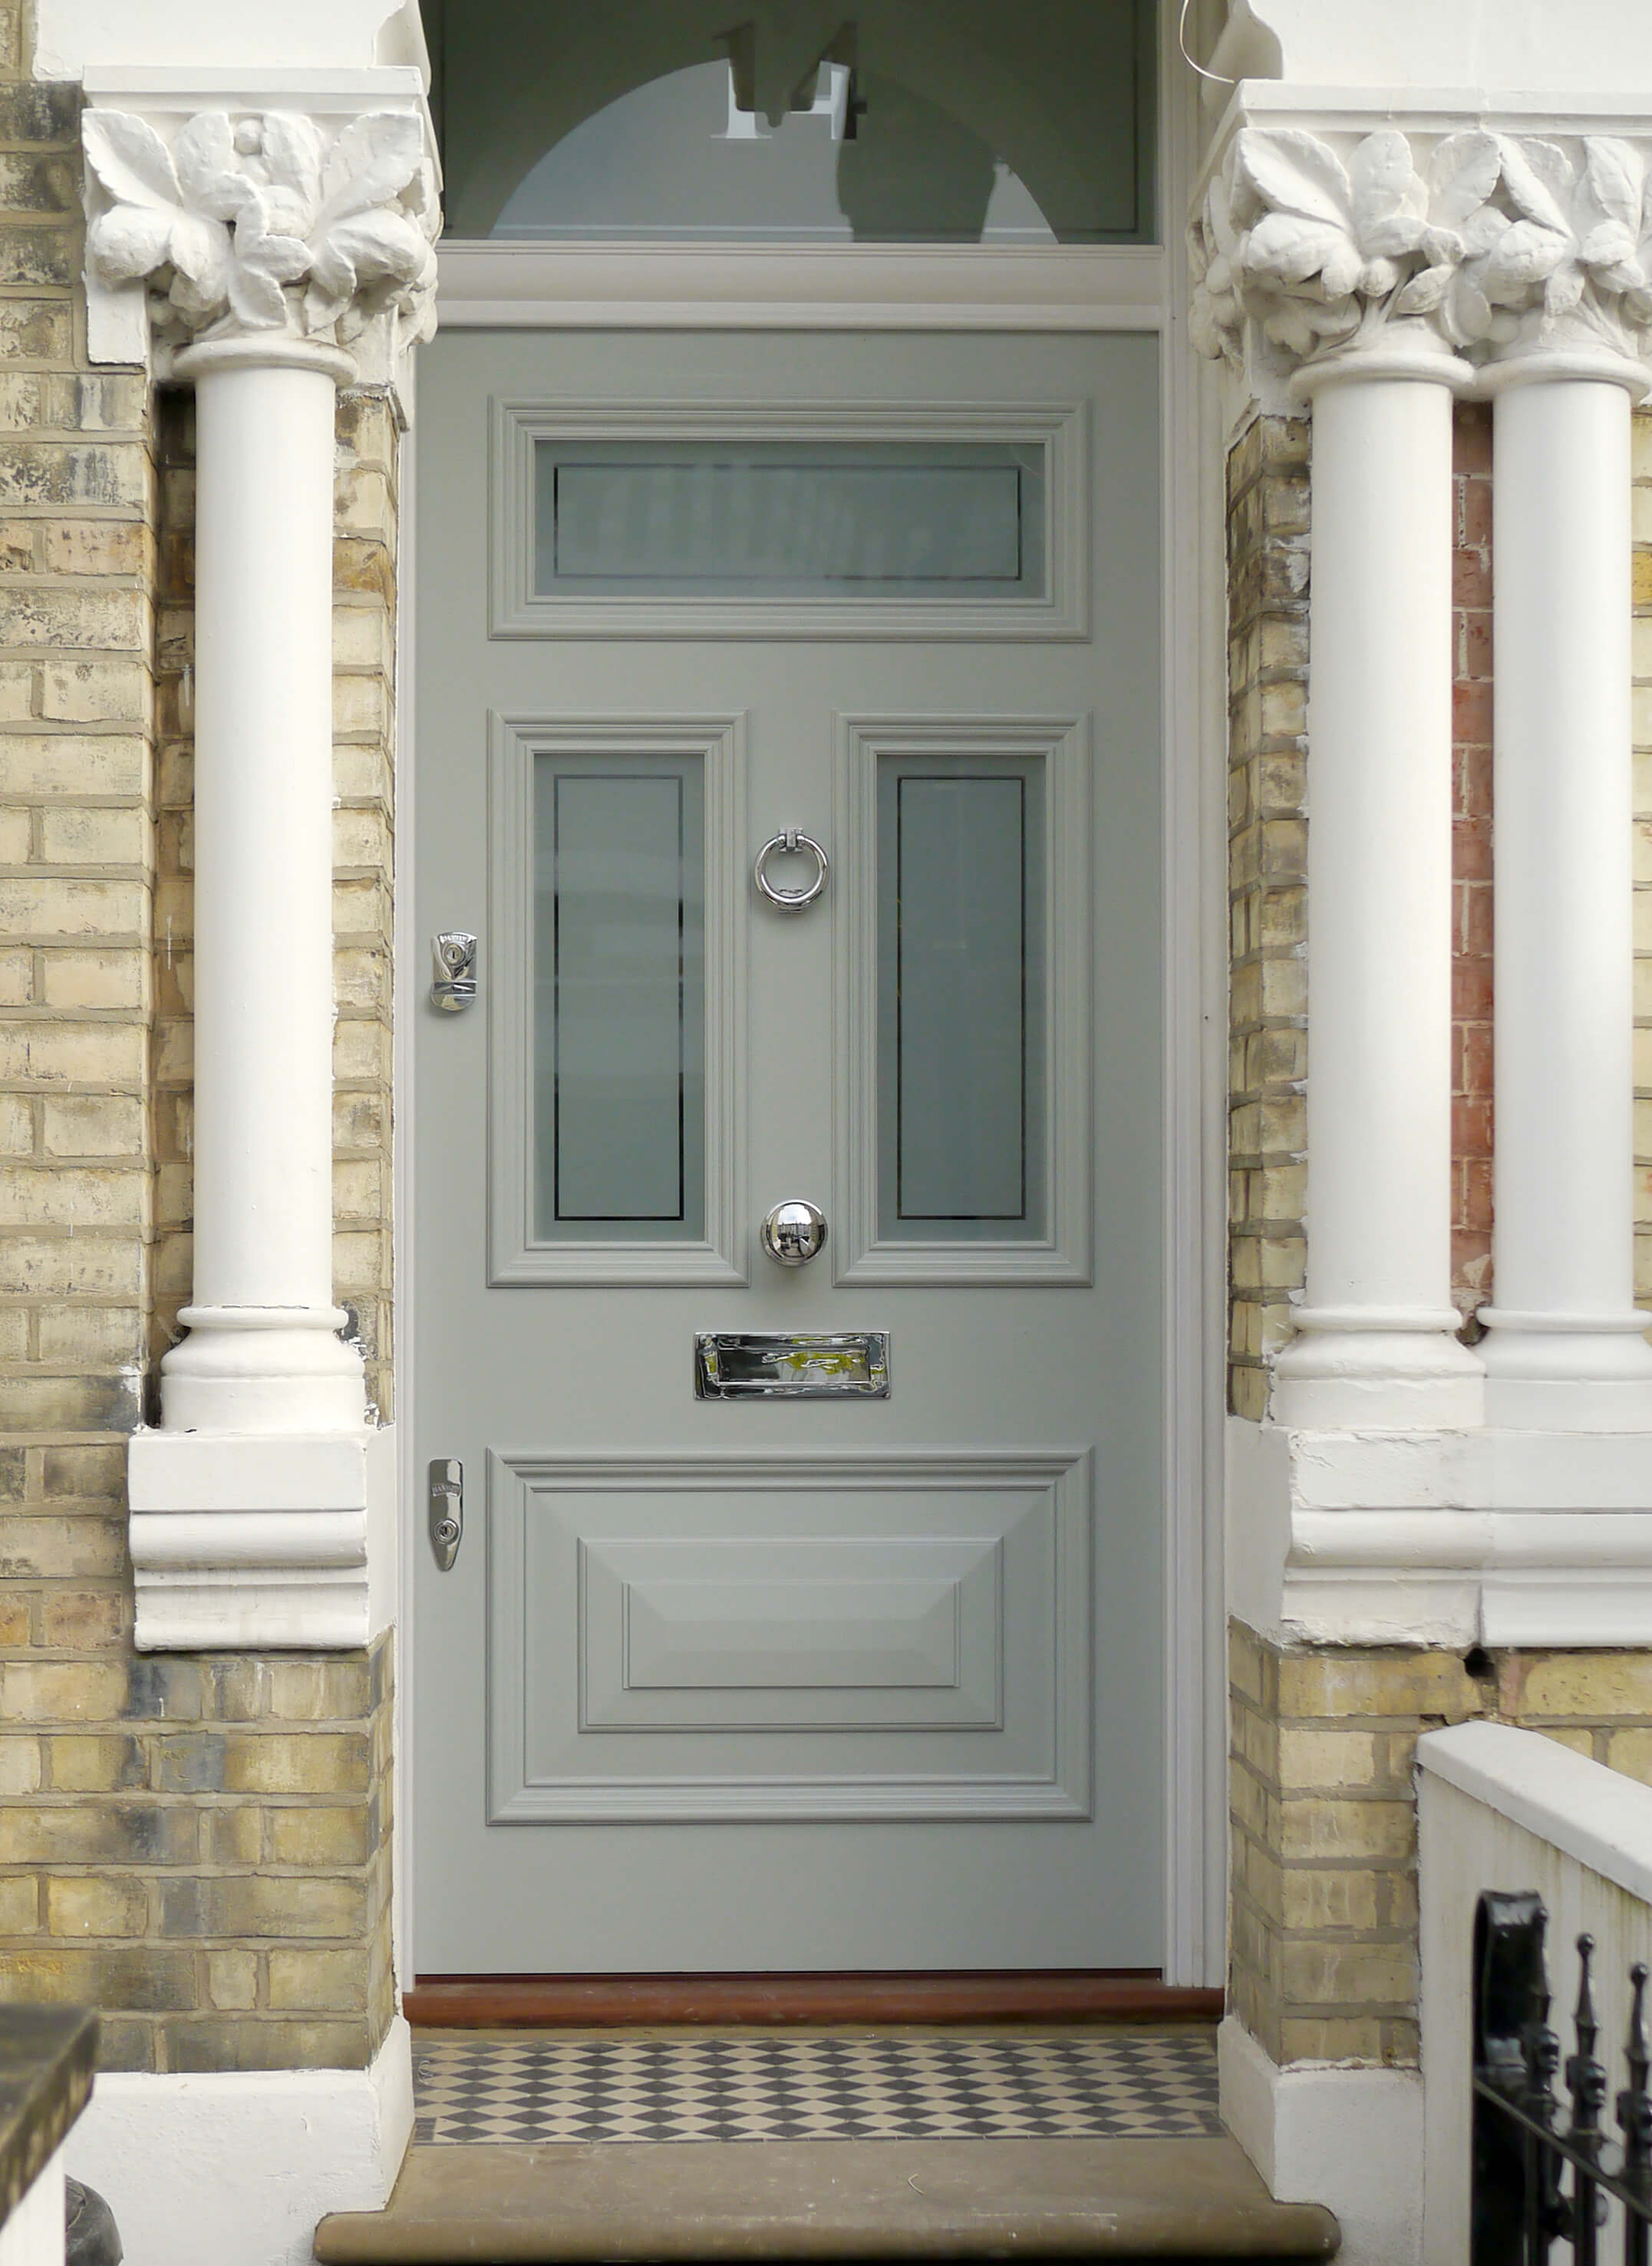 Decorative Features Became Lighter In Colour And Style Moving Away From The Heavy Gothic Influences Of Victorian Times Unmistakably Edwardian Hallmarks